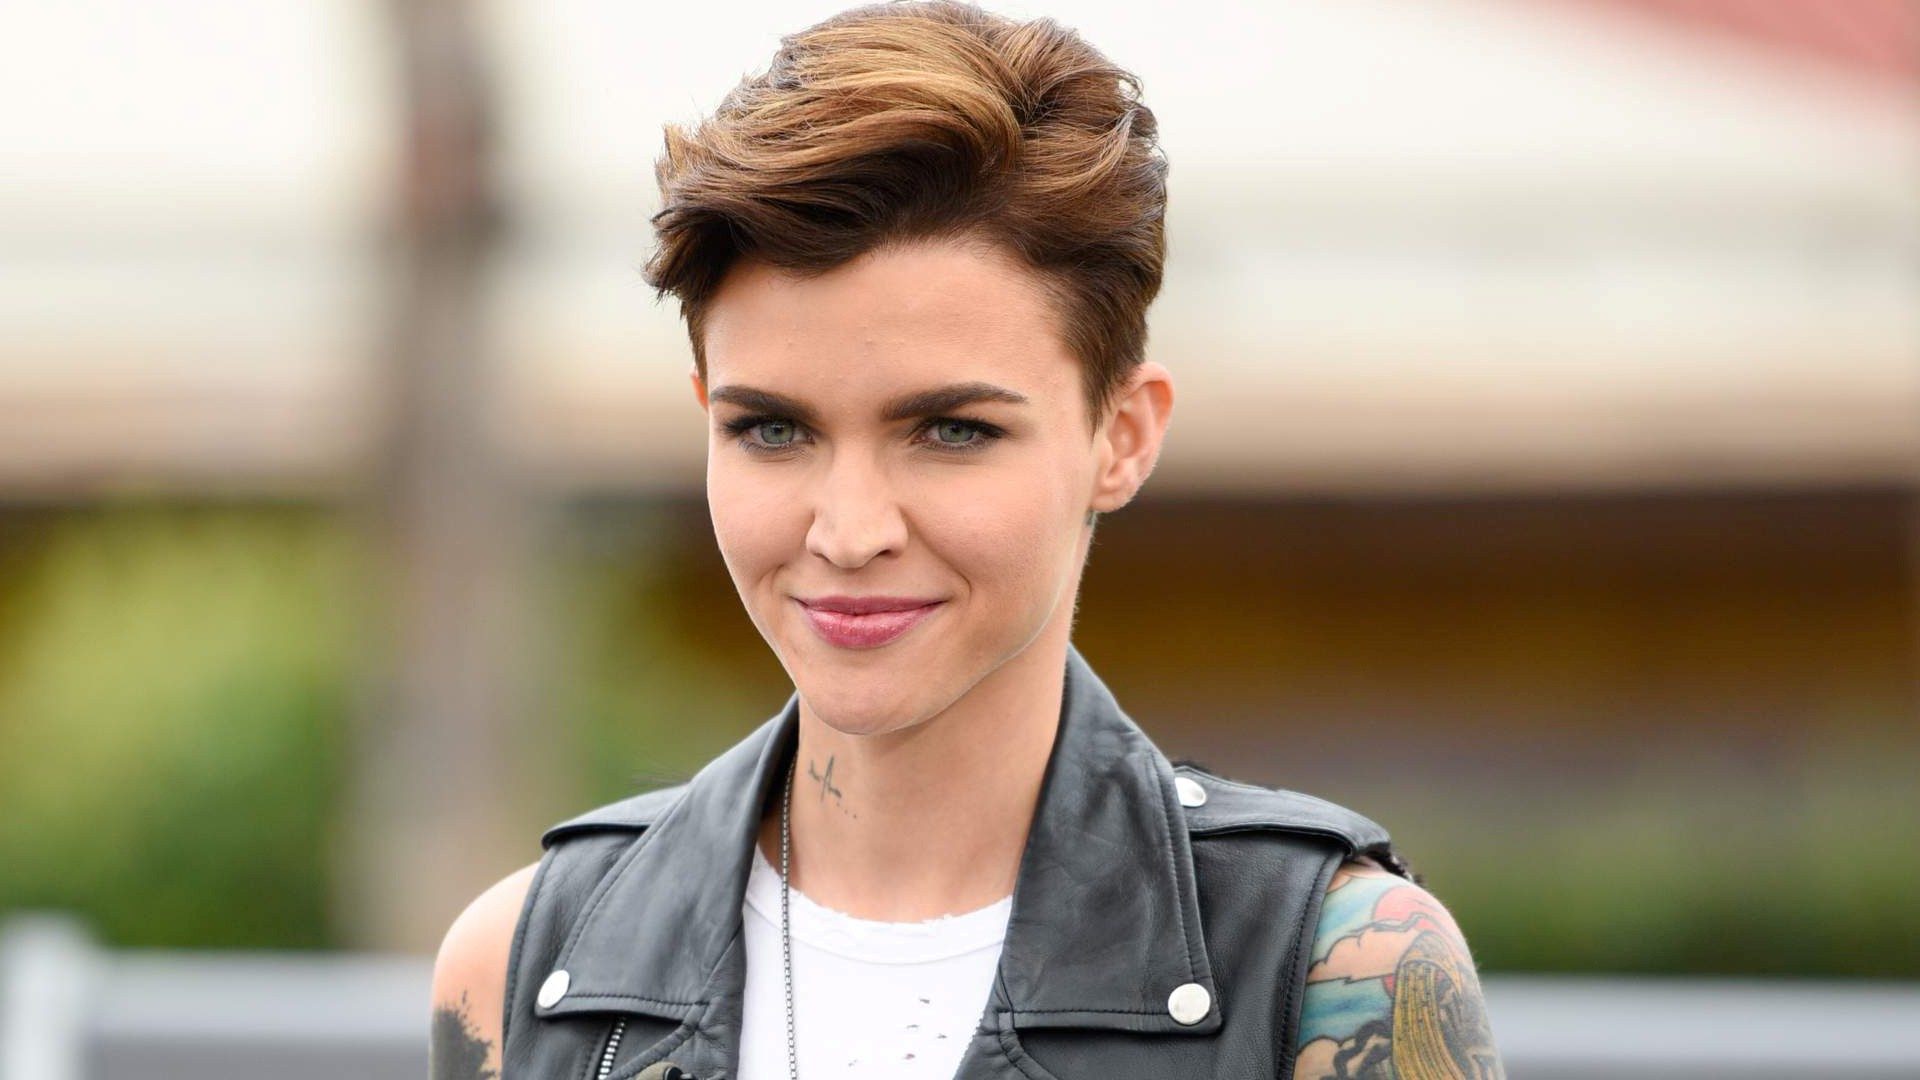 Hollywood Actress Ruby Rose In Short Hairstyle Hd Photo | Hd Wallpapers Intended For Ruby Rose Short Hairstyles (View 13 of 25)